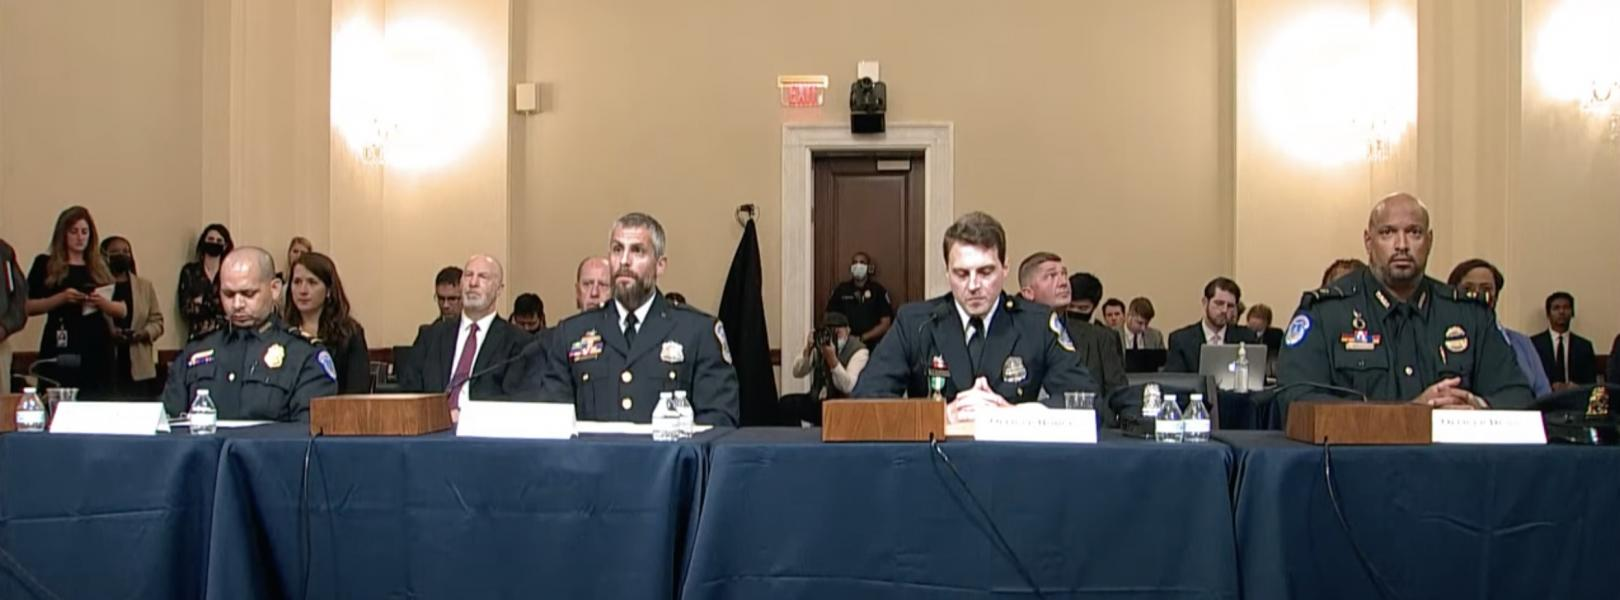 image — January 6 committee — officers testifying